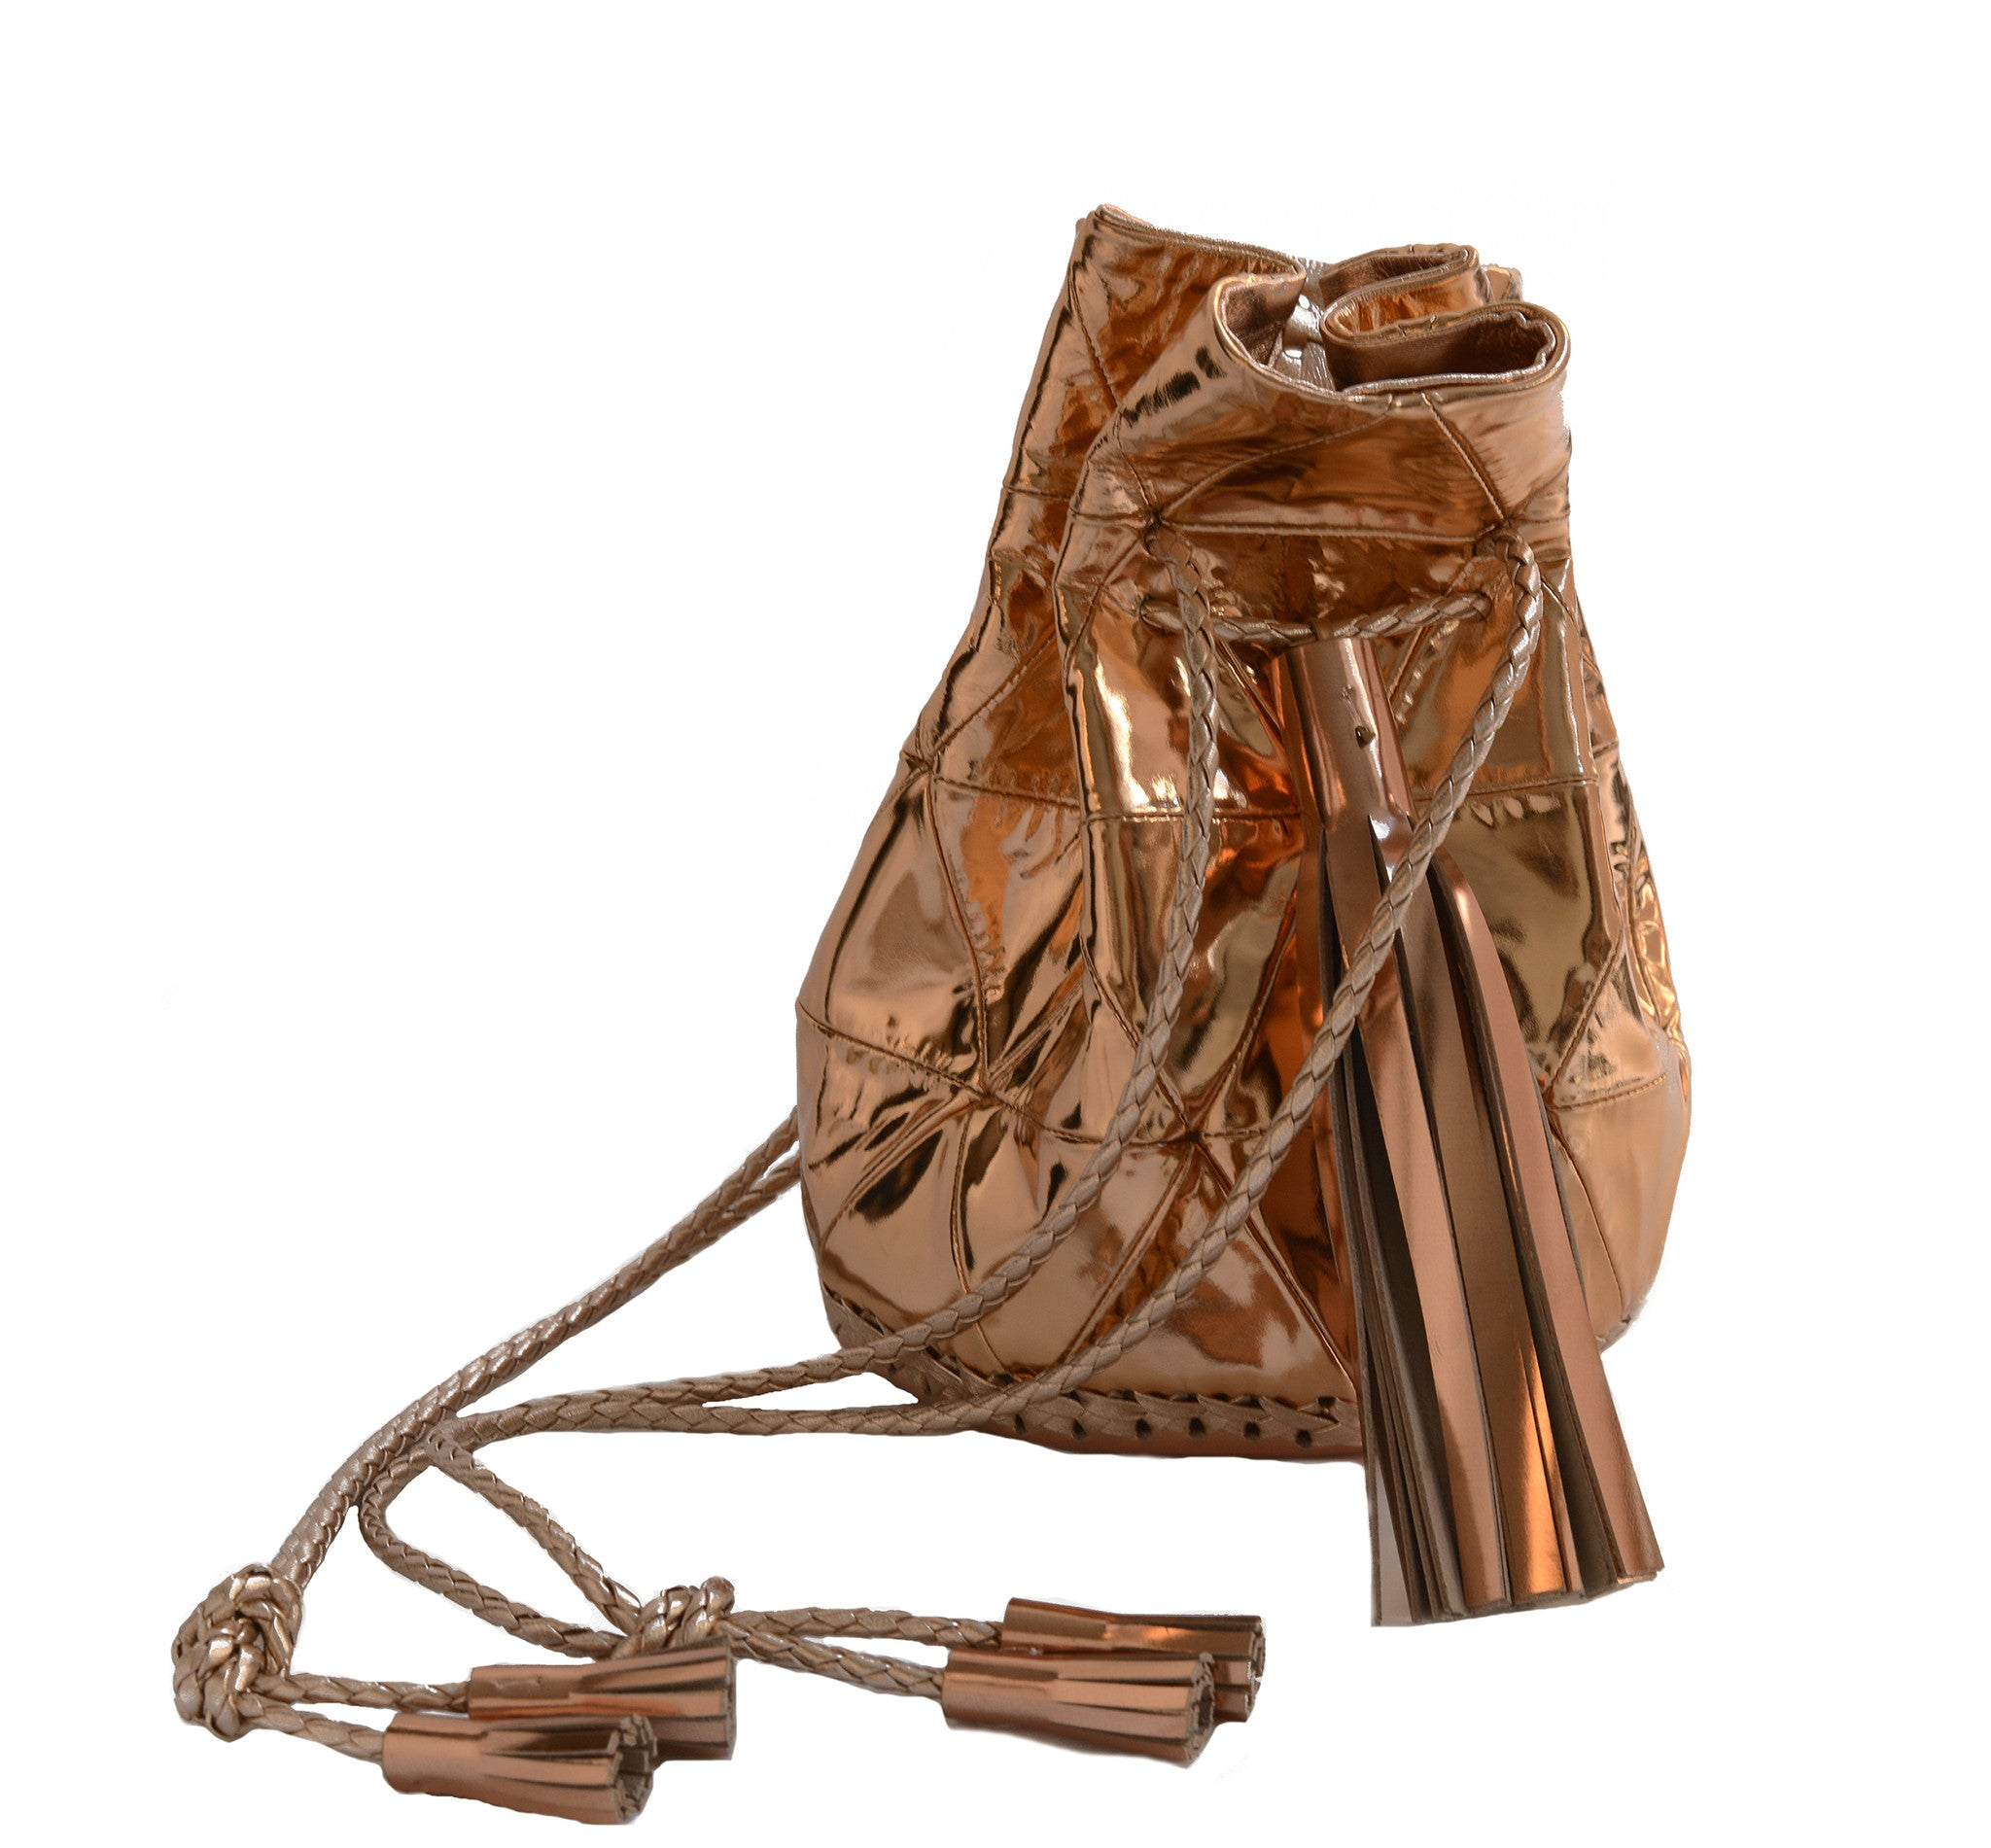 Copper Mirror Patent Leather Triangle Patchwork Bullet Bag Wendy Nichol Handbag Purse Designer Handmade in NYC Bucket Bag